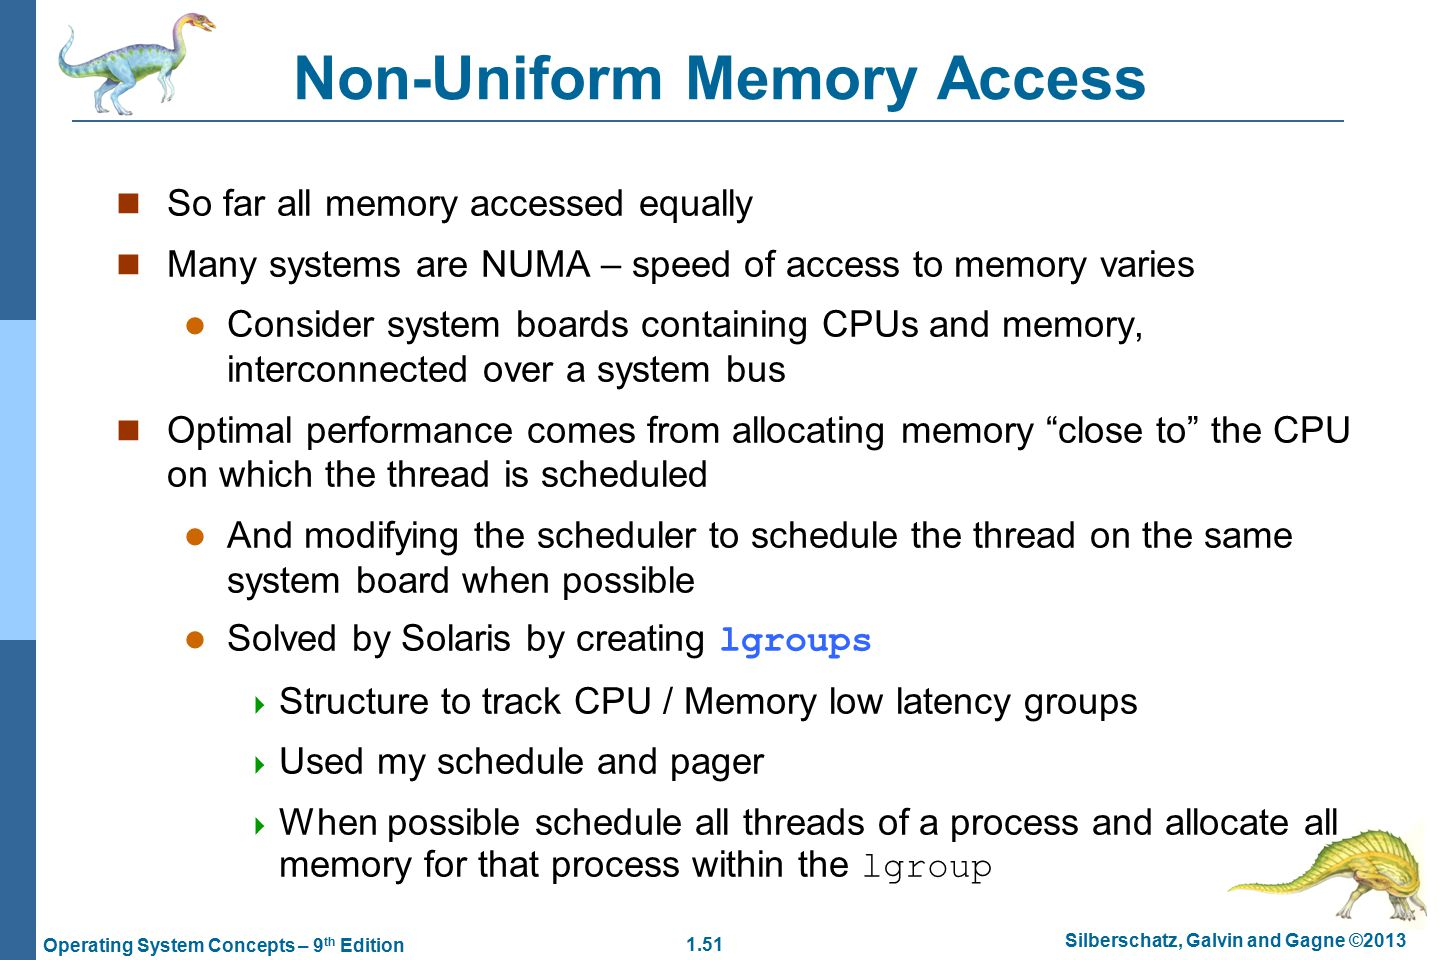 1.51 Silberschatz, Galvin and Gagne ©2013 Operating System Concepts – 9 th Edition Non-Uniform Memory Access So far all memory accessed equally Many systems are NUMA – speed of access to memory varies Consider system boards containing CPUs and memory, interconnected over a system bus Optimal performance comes from allocating memory close to the CPU on which the thread is scheduled And modifying the scheduler to schedule the thread on the same system board when possible Solved by Solaris by creating lgroups  Structure to track CPU / Memory low latency groups  Used my schedule and pager  When possible schedule all threads of a process and allocate all memory for that process within the lgroup